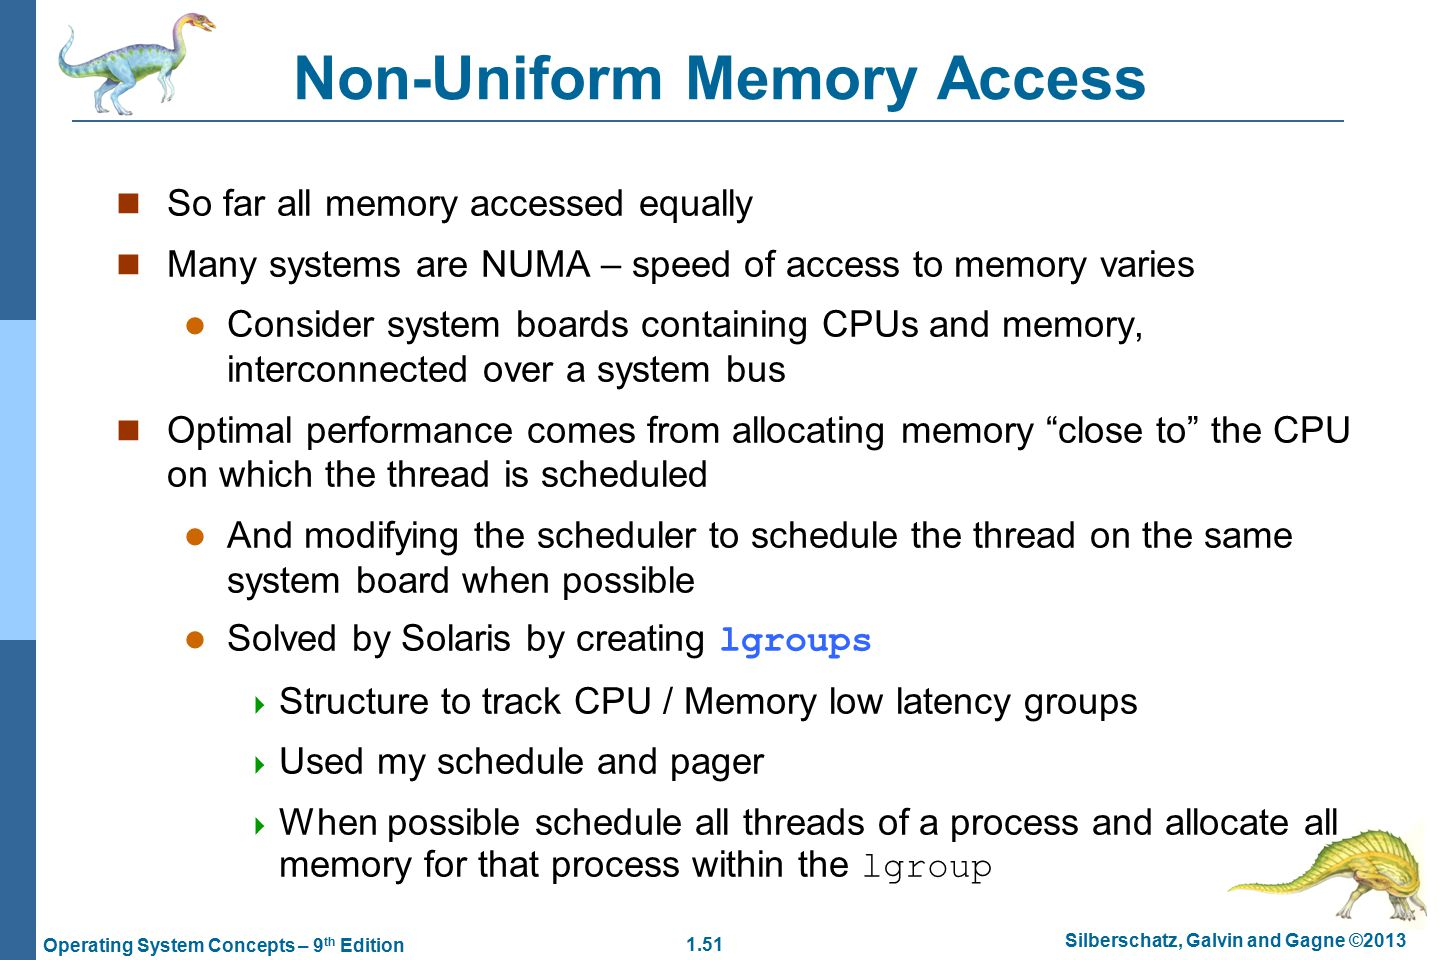 1.51 Silberschatz, Galvin and Gagne ©2013 Operating System Concepts – 9 th Edition Non-Uniform Memory Access So far all memory accessed equally Many systems are NUMA – speed of access to memory varies Consider system boards containing CPUs and memory, interconnected over a system bus Optimal performance comes from allocating memory close to the CPU on which the thread is scheduled And modifying the scheduler to schedule the thread on the same system board when possible Solved by Solaris by creating lgroups  Structure to track CPU / Memory low latency groups  Used my schedule and pager  When possible schedule all threads of a process and allocate all memory for that process within the lgroup